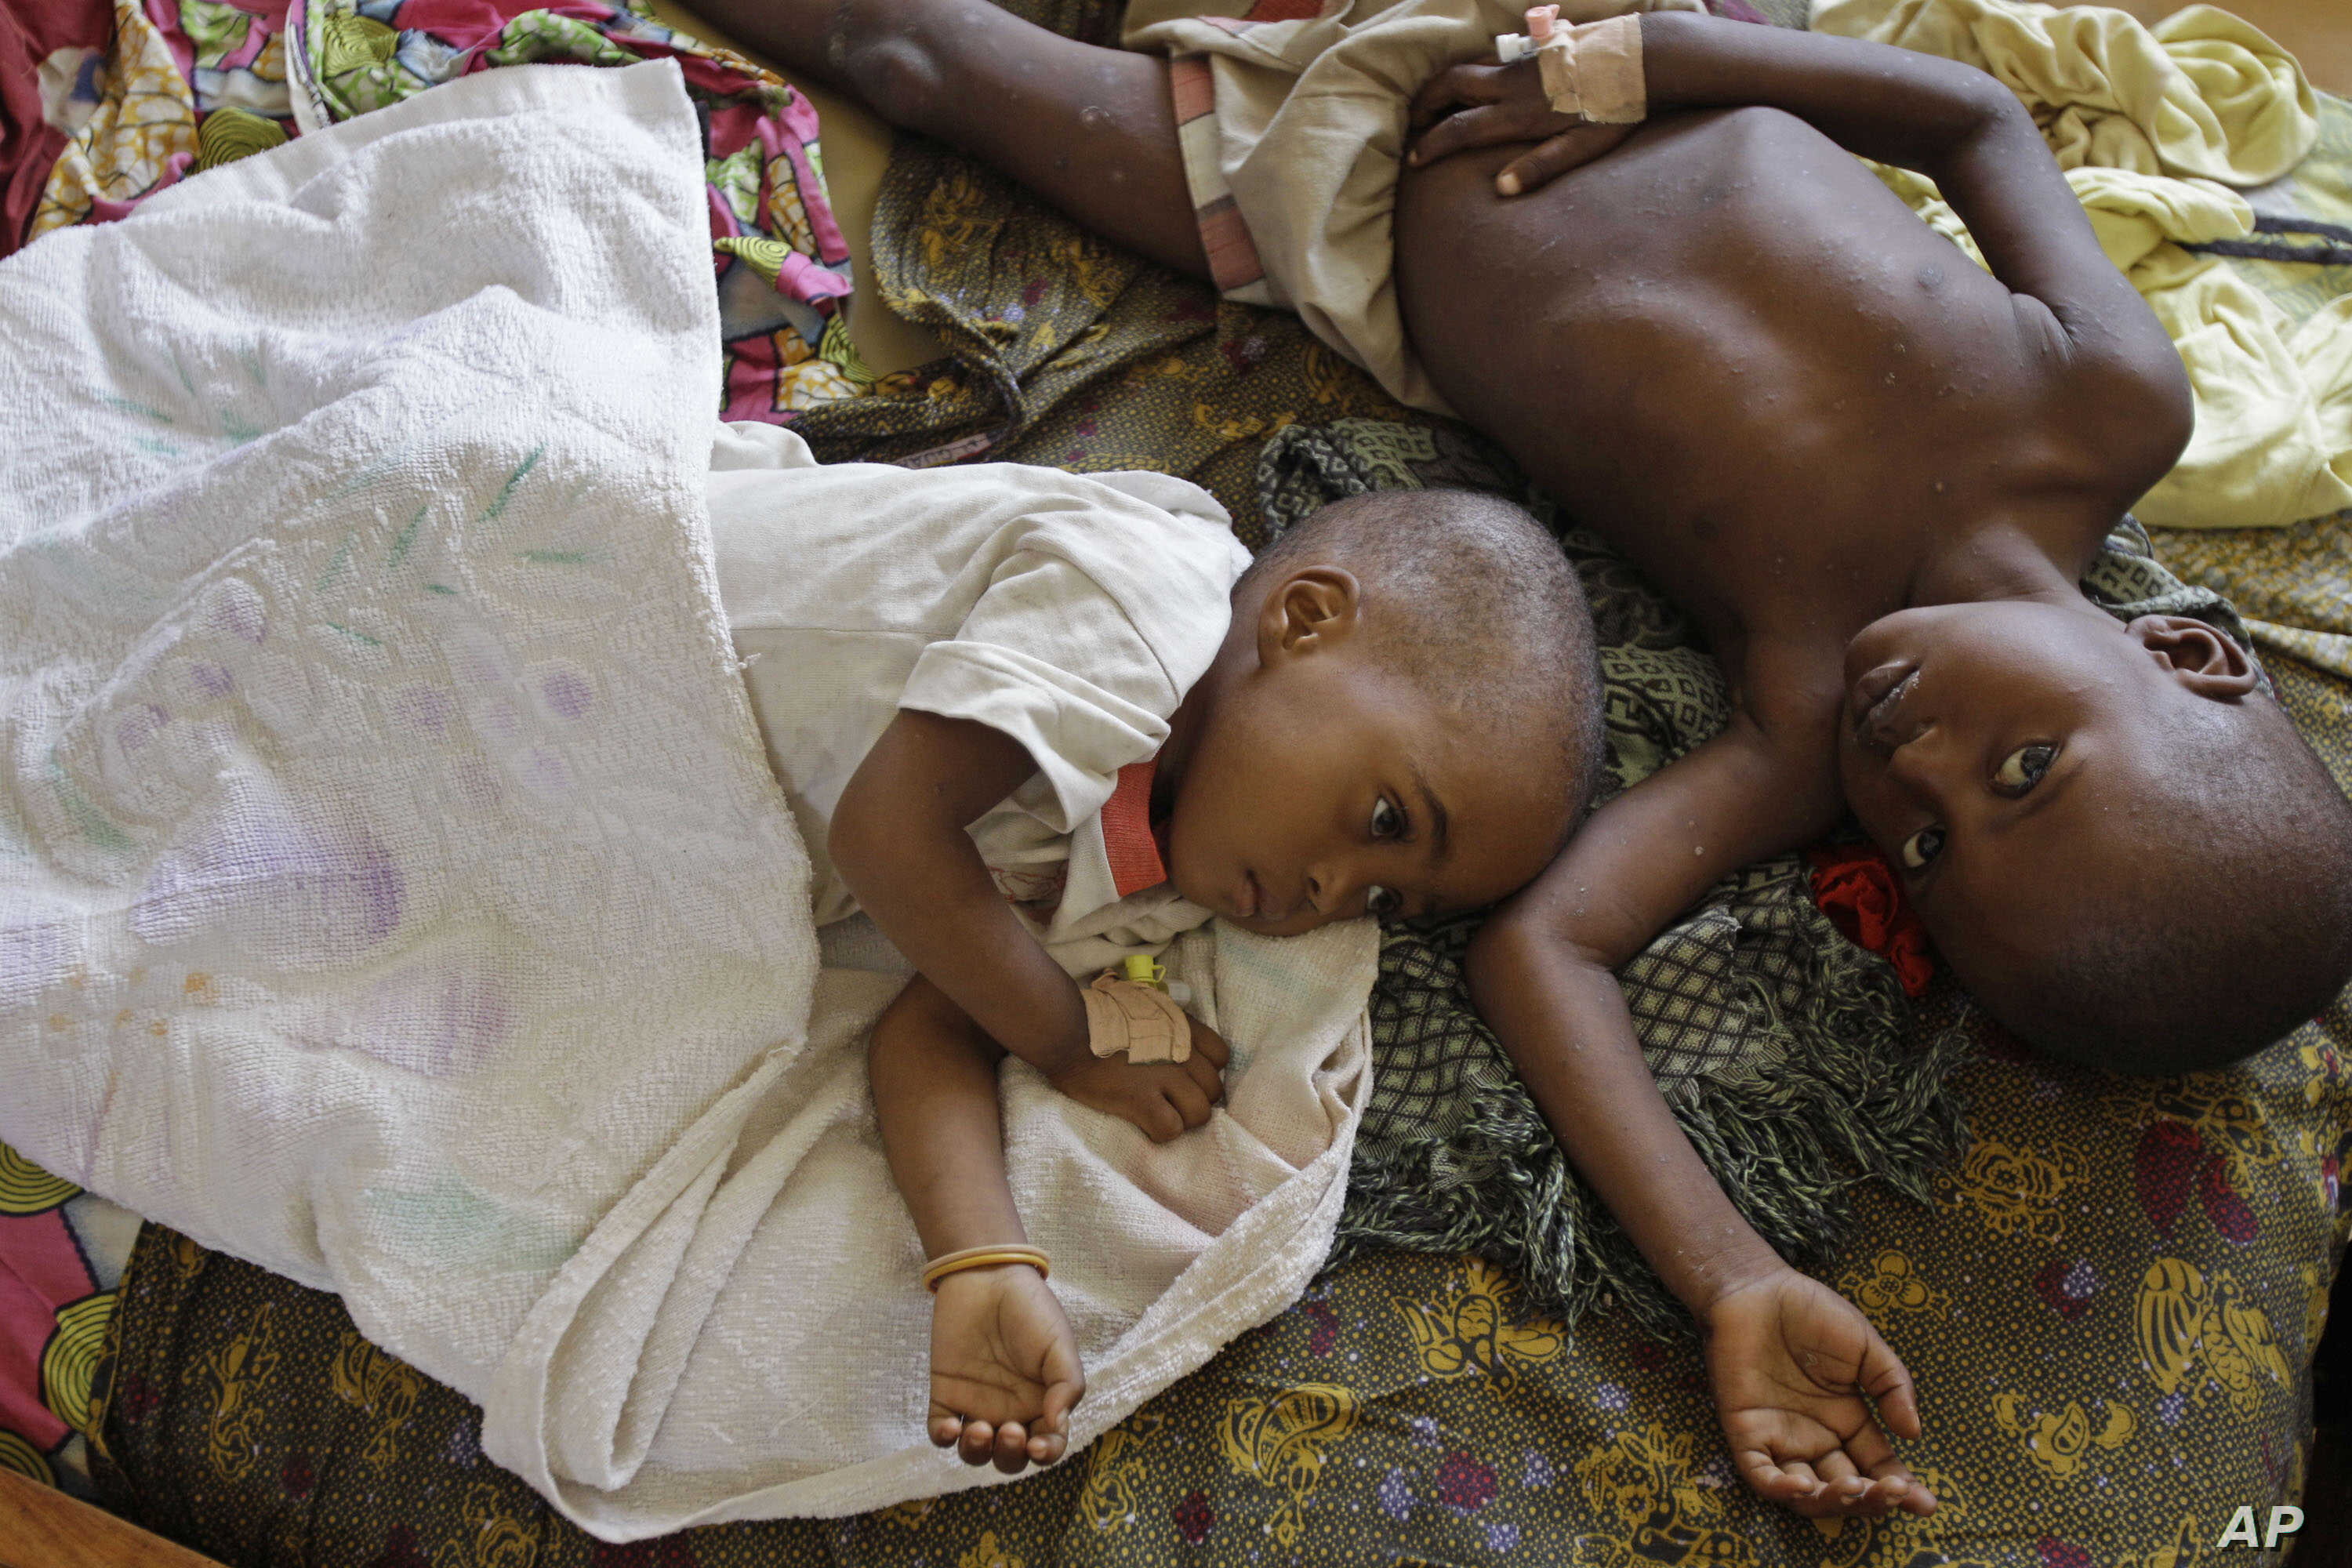 FILE -  Two children stricken down with malaria rest at the local hospital in the small village of Walikale, Congo.